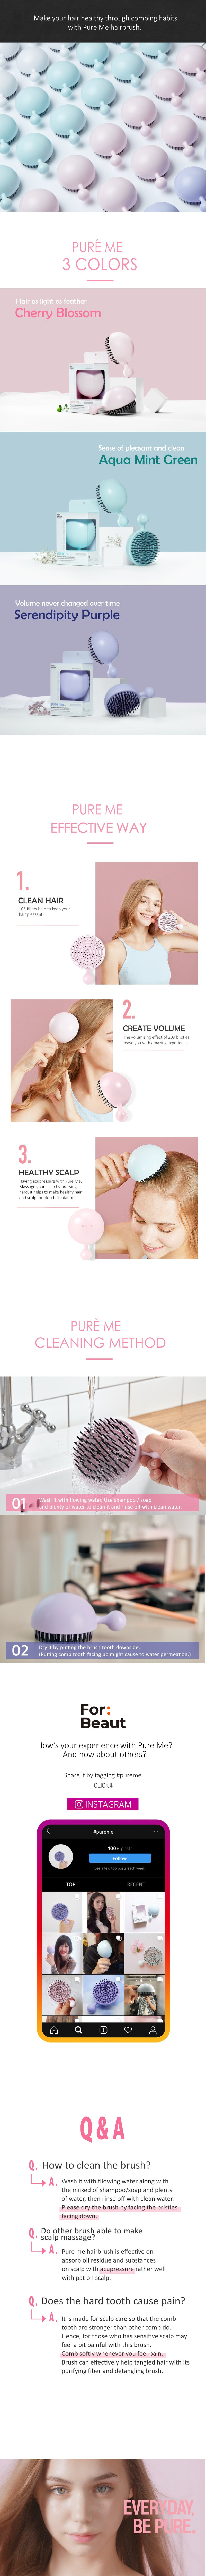 For Beaut Pure Me hairbrush information